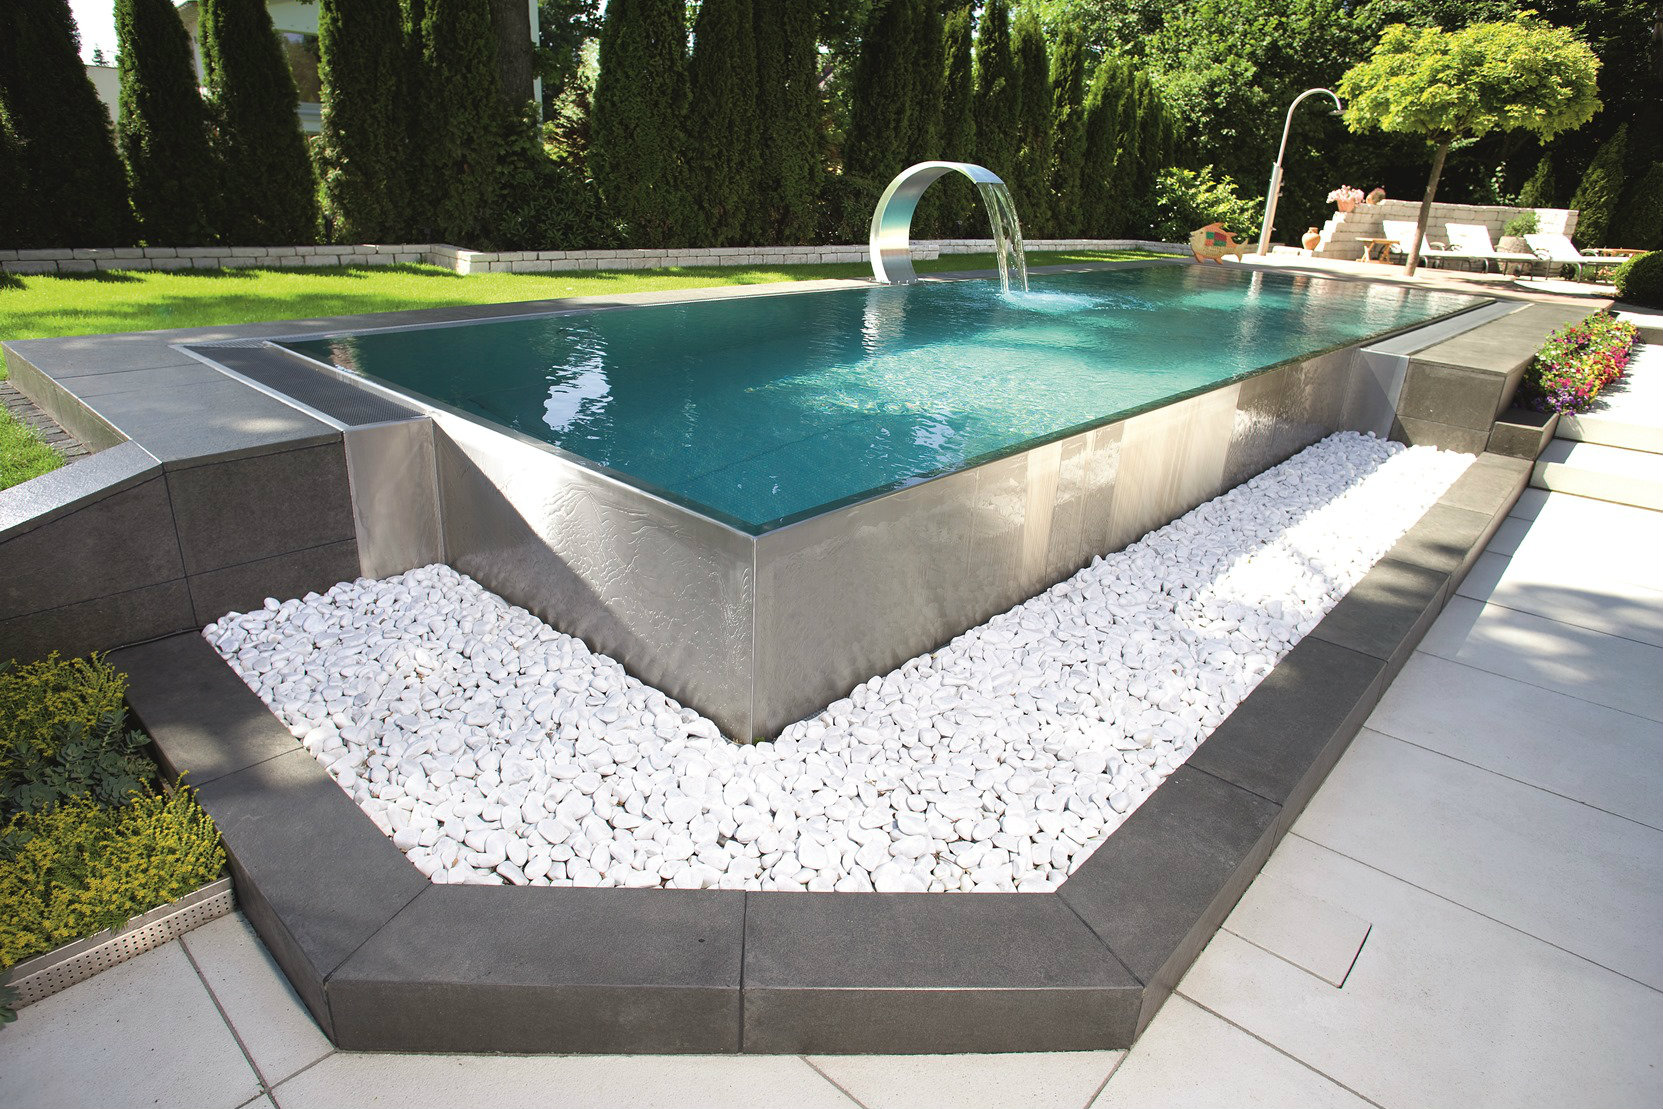 European stainless steel pool manufacturer berndorf enters for Swimming pool manufacturers